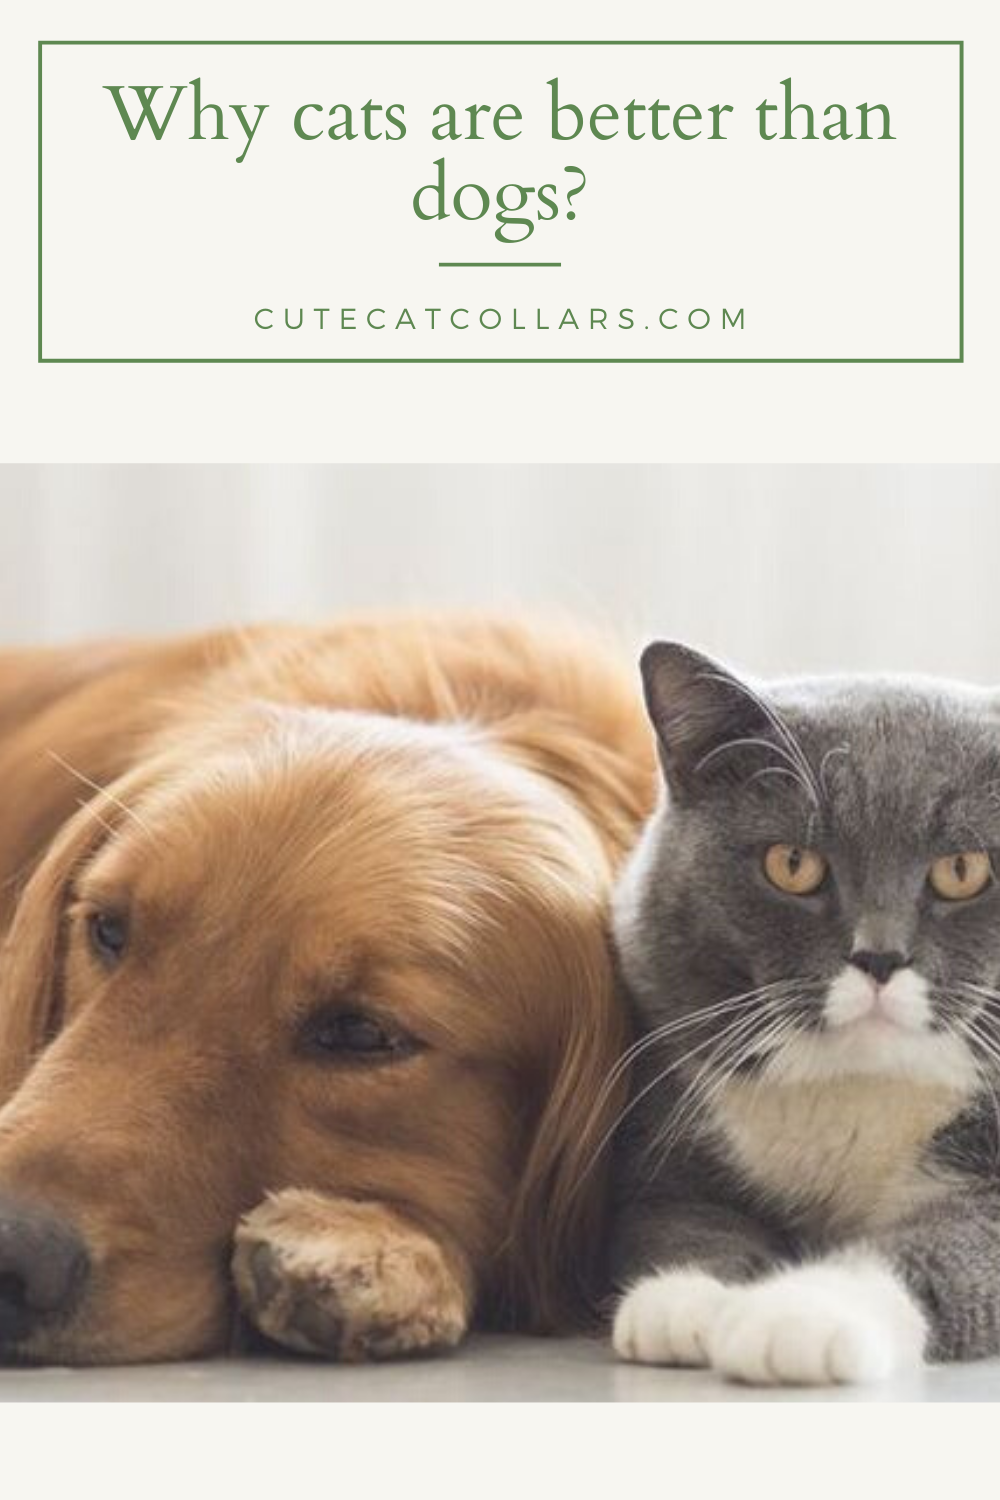 Why Cats Are Better Than Dogs In 2020 Dog Cat Cute Cats And Kittens Cats And Kittens